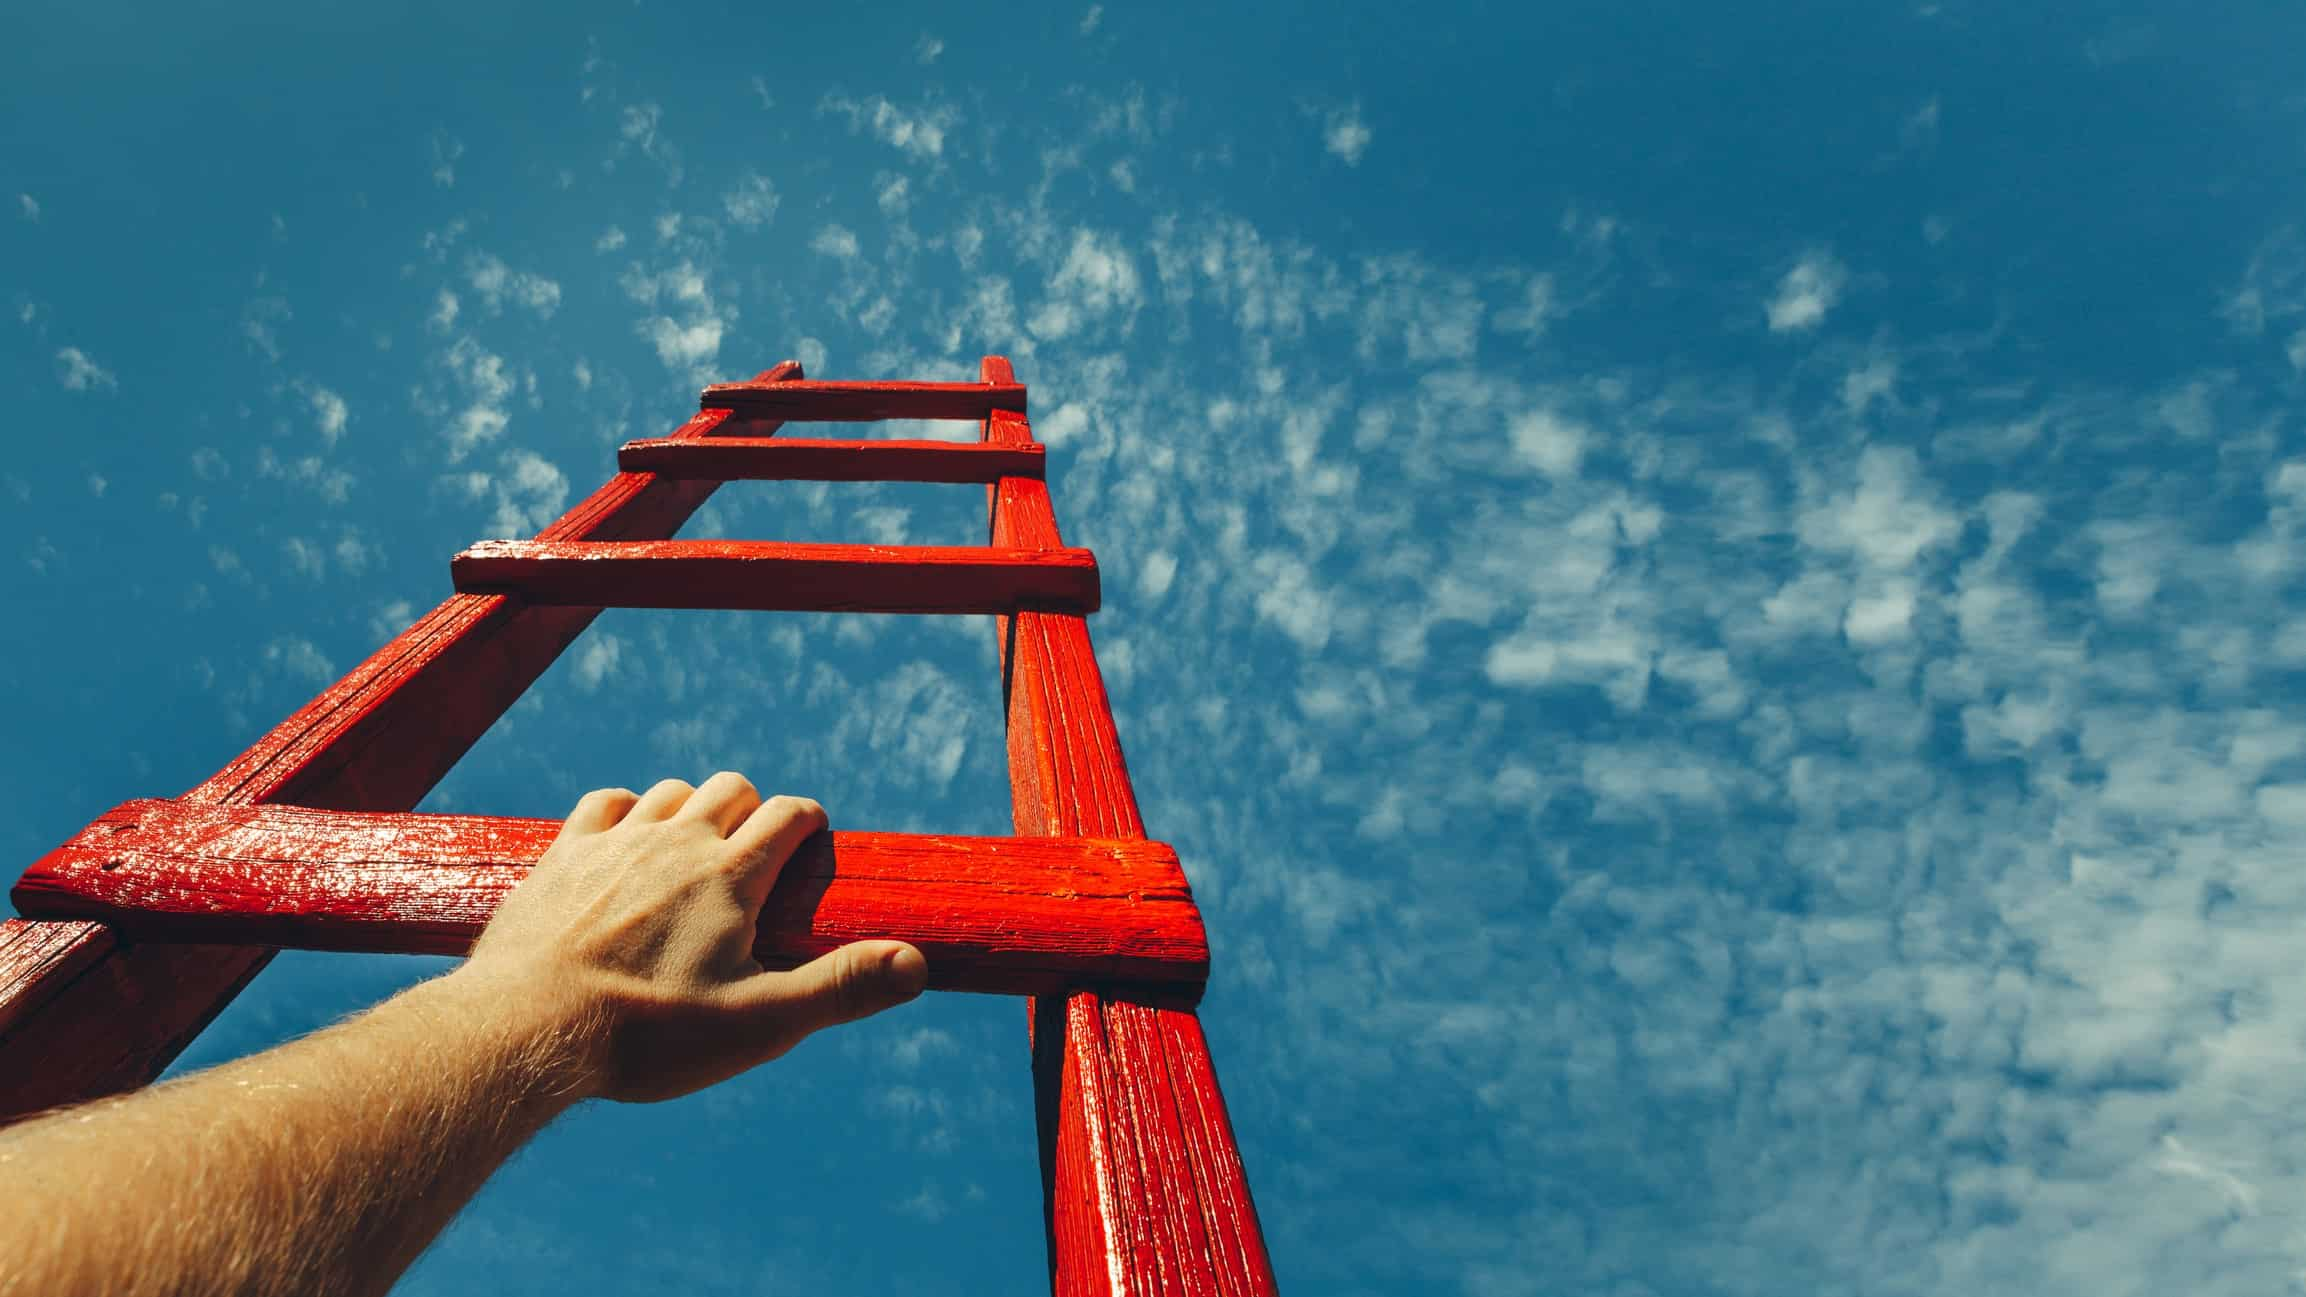 ASX share price rise represented by man's hand grabbing onto red ladder that is pointed towards sky